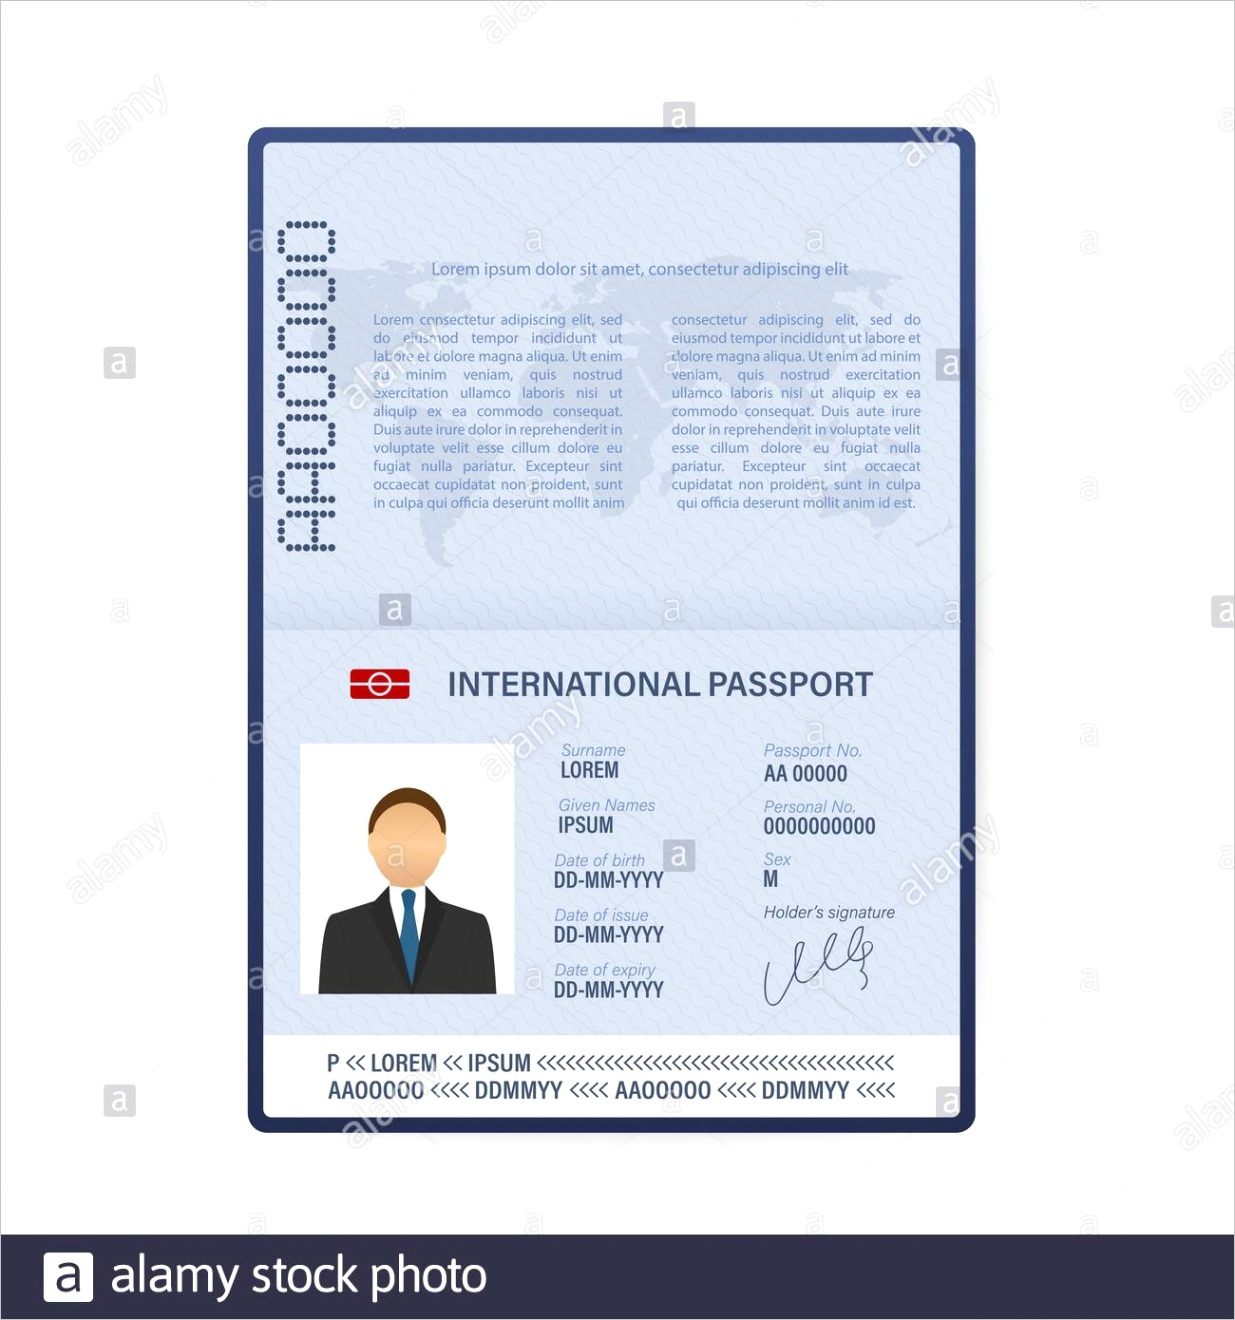 blank open passport template international passport with sample personal data page vector stock illustration image ml